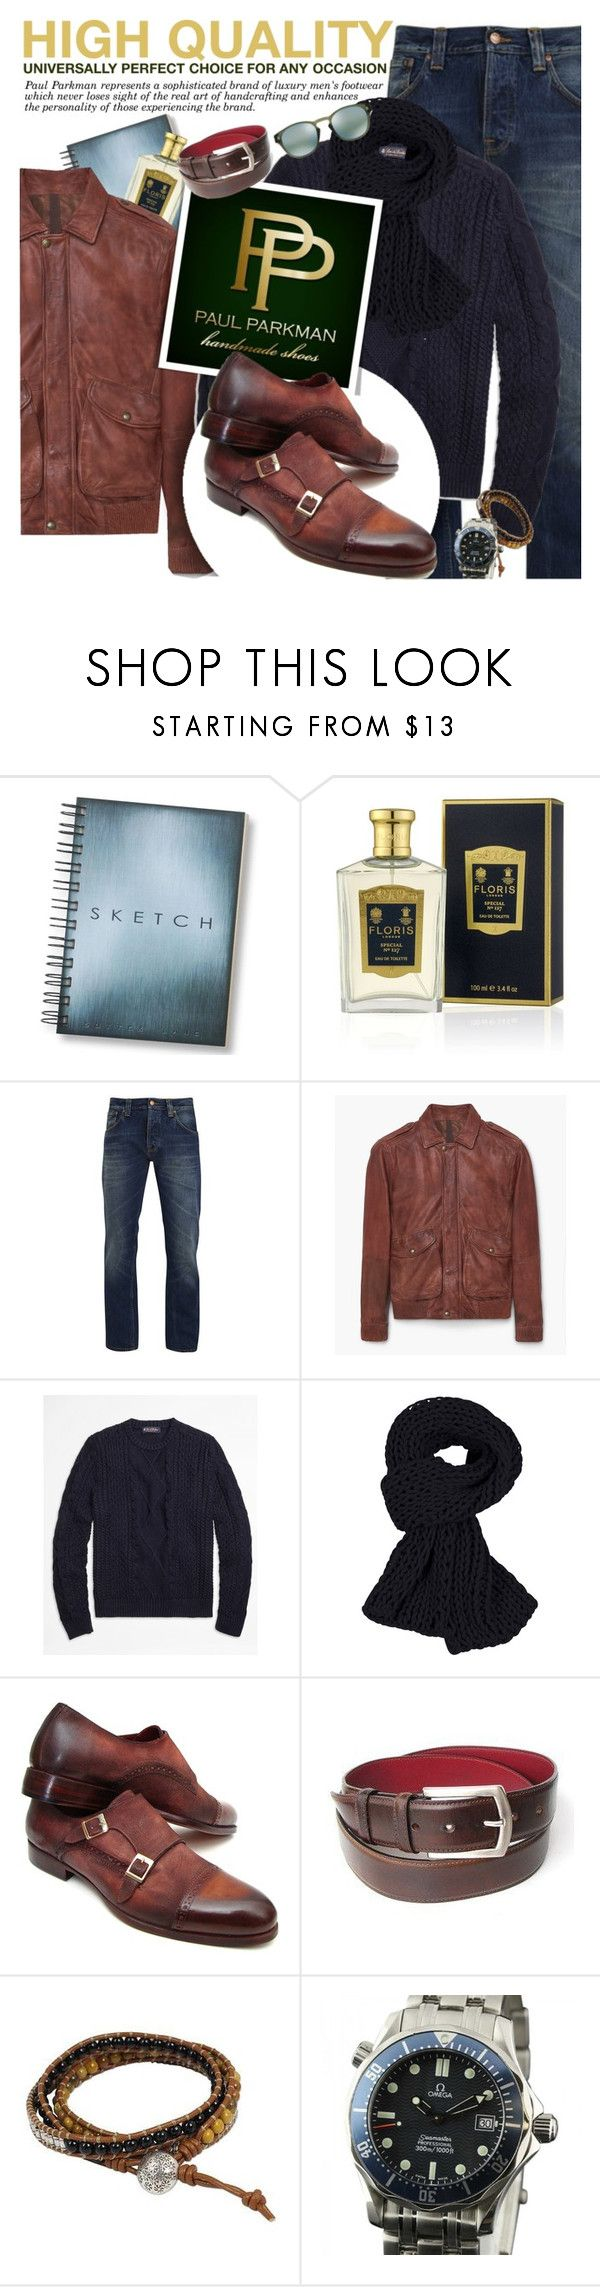 """PAUL PARKMAN - High quality shoes and belts!"" by anita-n on Polyvore featuring Floris, Nudie Jeans Co., MANGO, Brooks Brothers, NOVICA, OMEGA, Oakley, women's clothing, women's fashion and women"